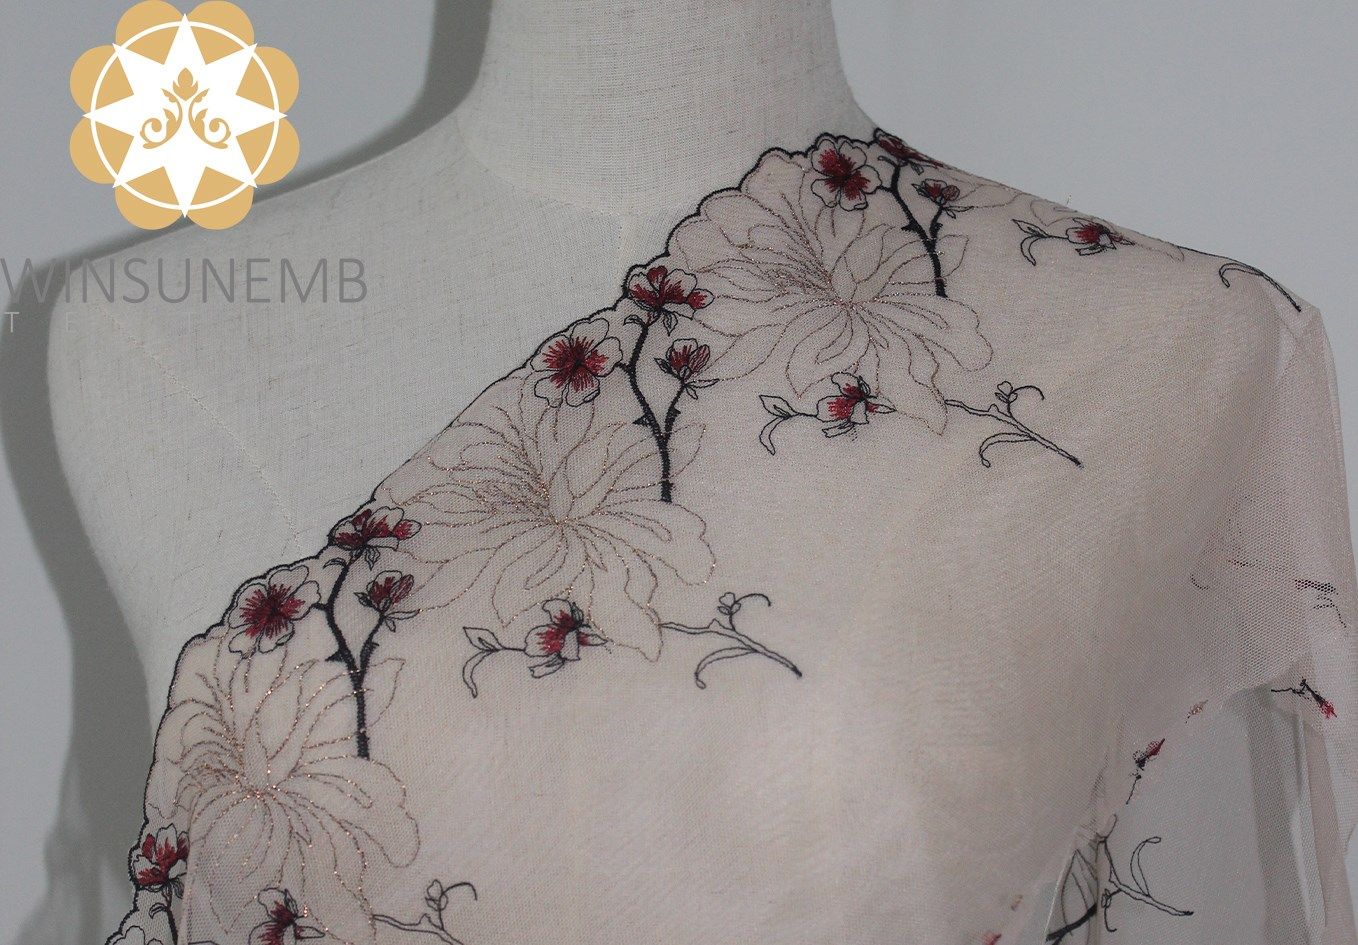 Winsunemb -Manufacturer Of Lace Trim By The Yard Enchanting Plum Embroidery Lingerie-4